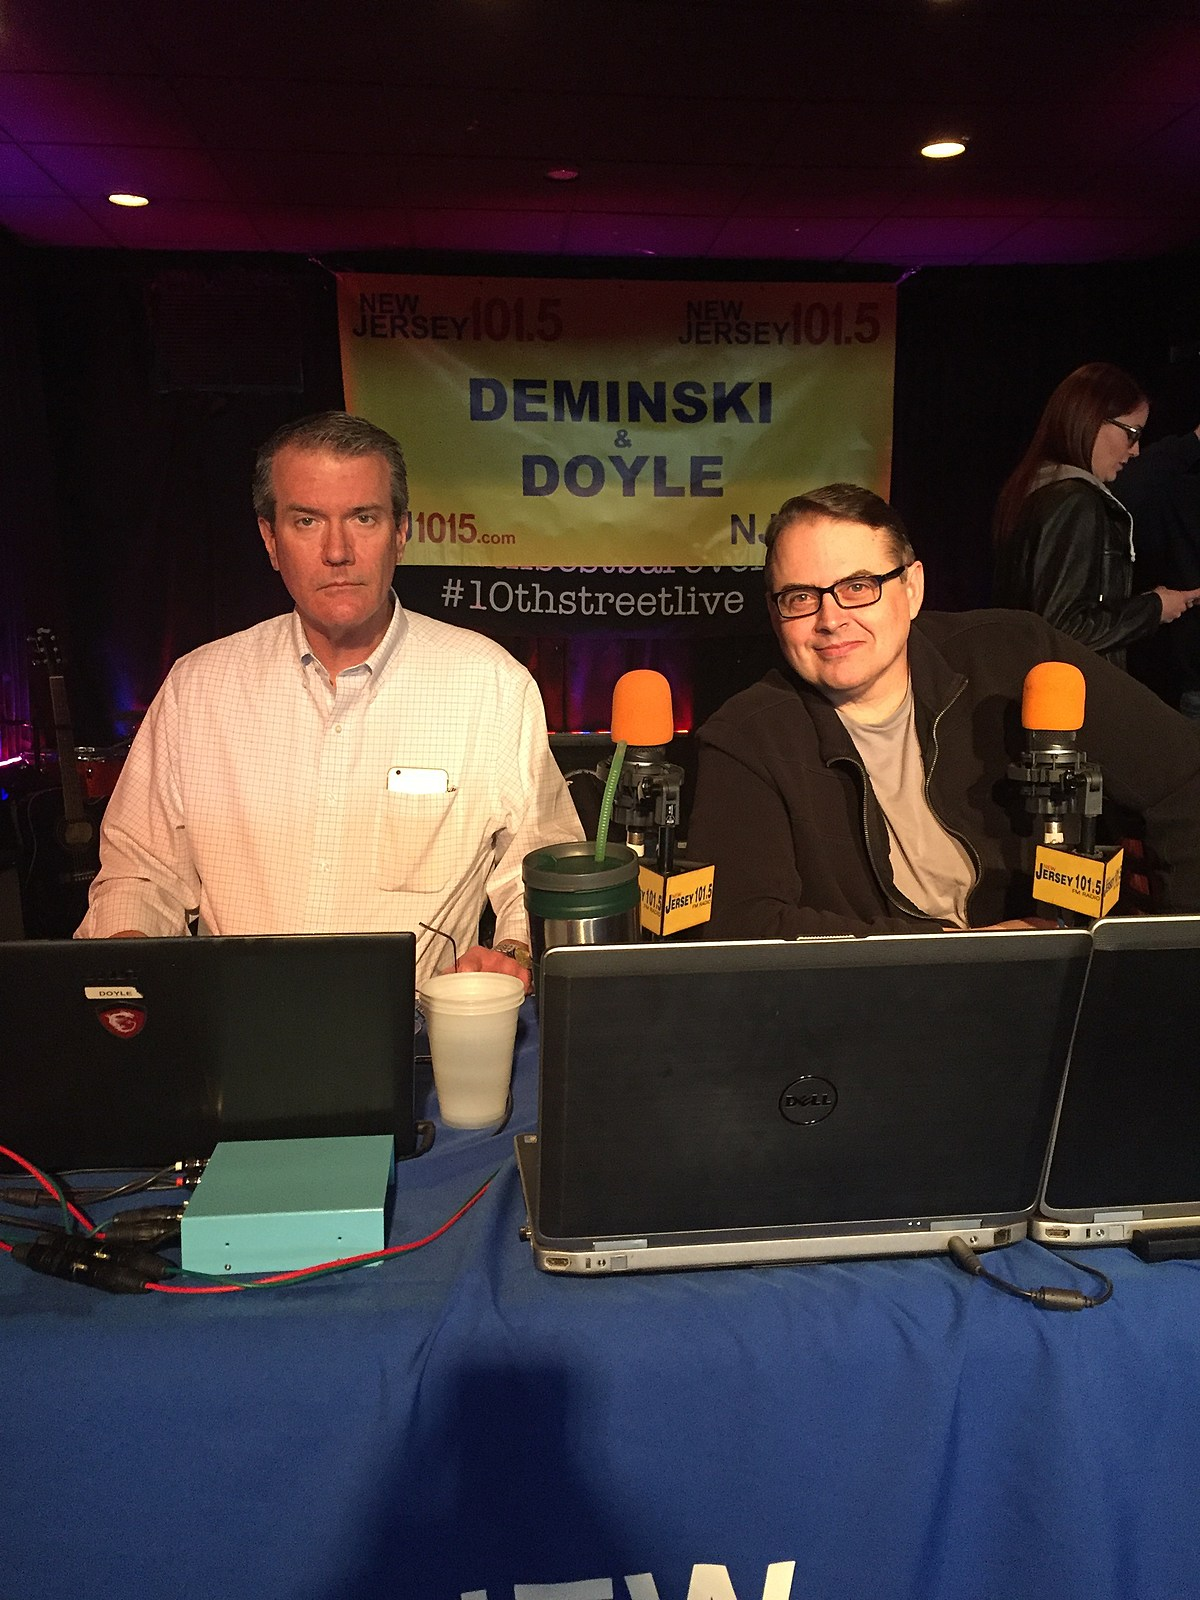 Deminski and Doyle live from 10th Street Live in Kenilworth